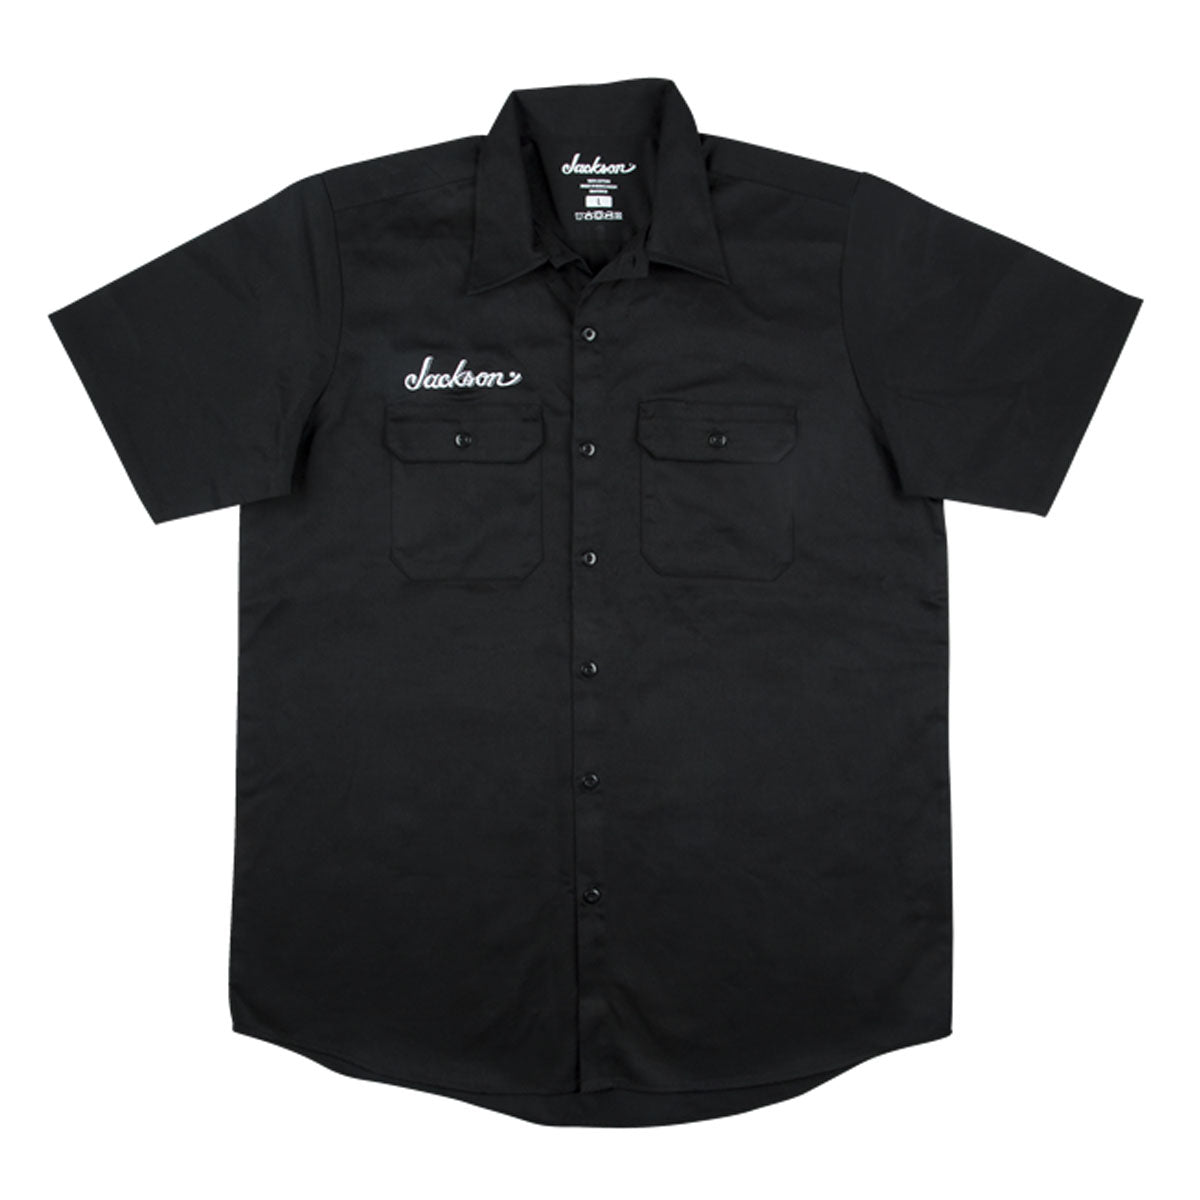 Jackson Logo Mens Work Shirt, Black, M Medium - 2999578506